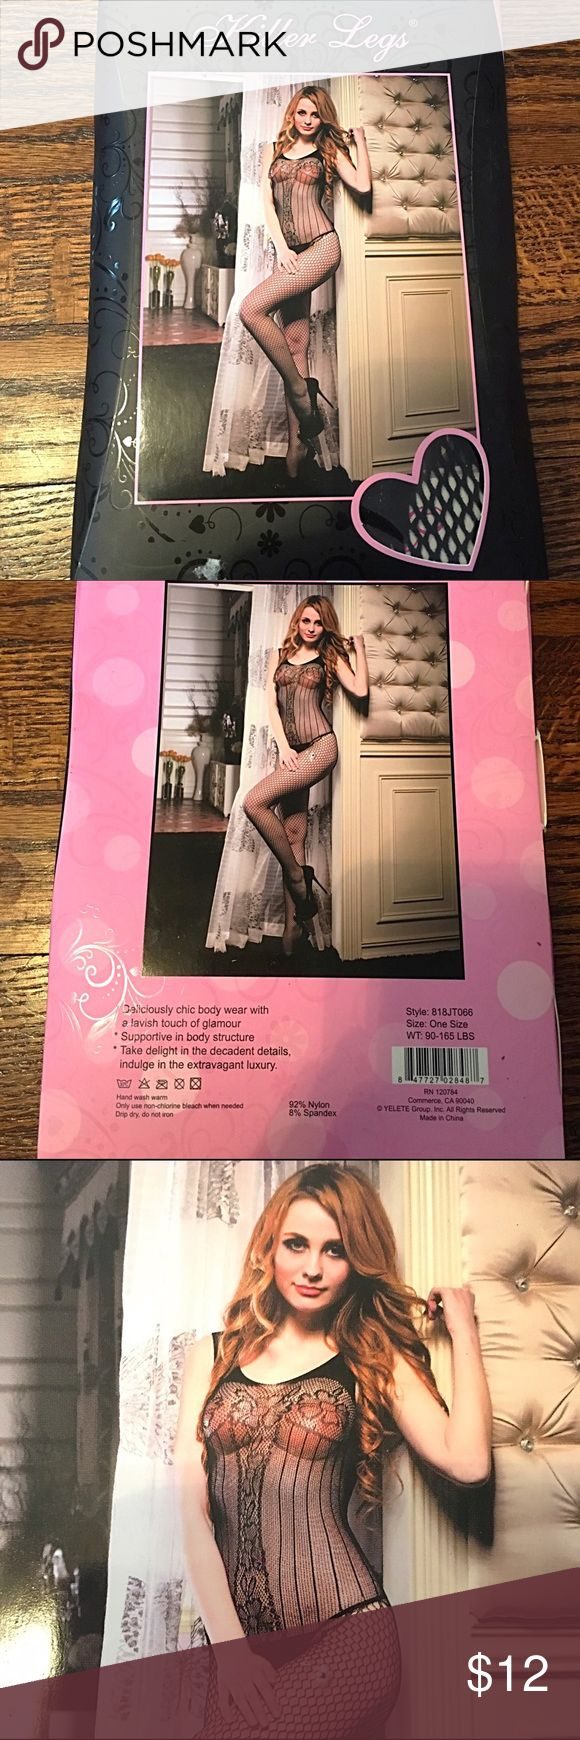 👯Black Floral Lace Body Stocking This is a black lace and fishnet body stocking featuring a tank top and floral lace. The package says one size fits all from 90-165 lbs. I received this as a gift and it has never come out of the package. Killer Legs Intimates & Sleepwear